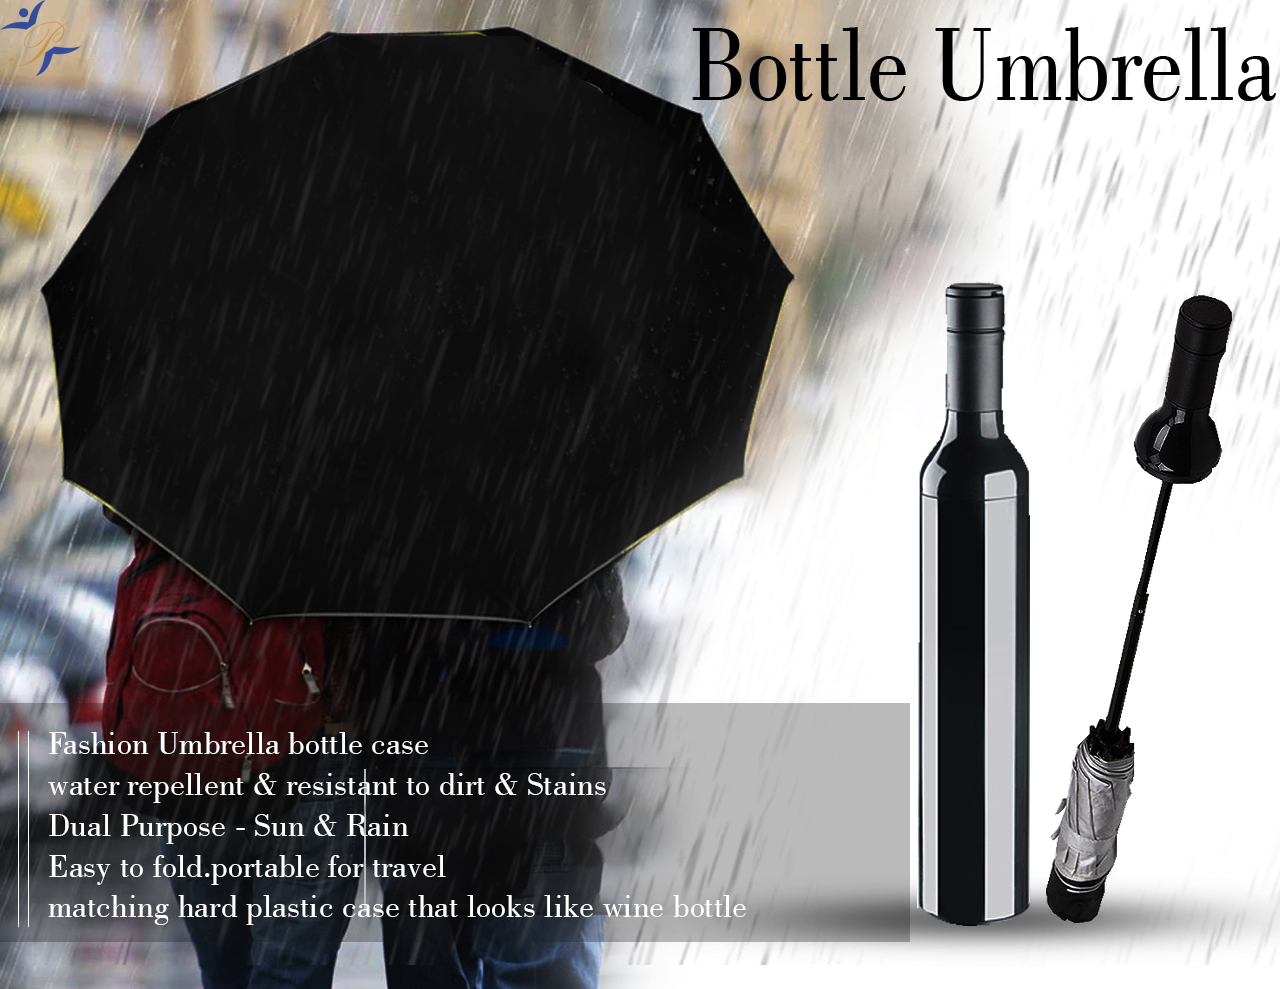 bottle umbrella